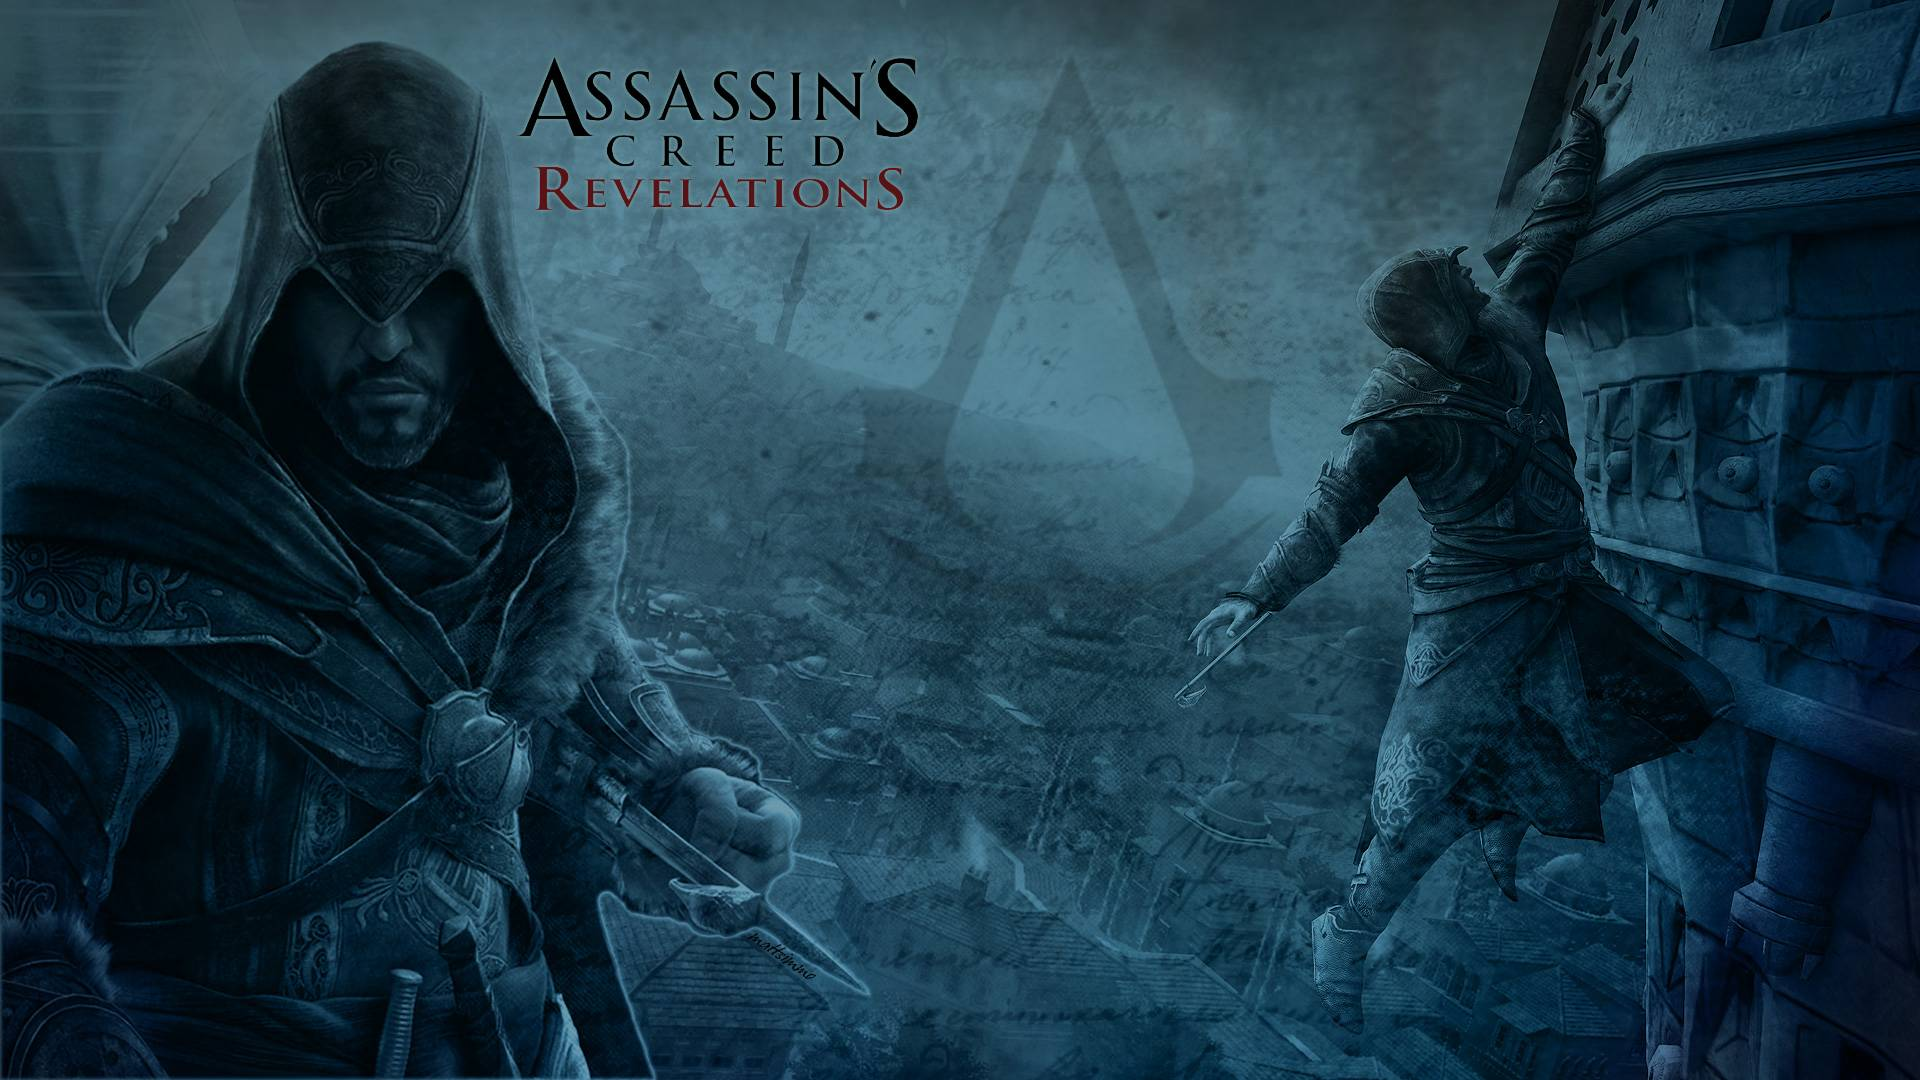 Assassins Creed Revelations Wallpapers In 1080p Hd Page 2